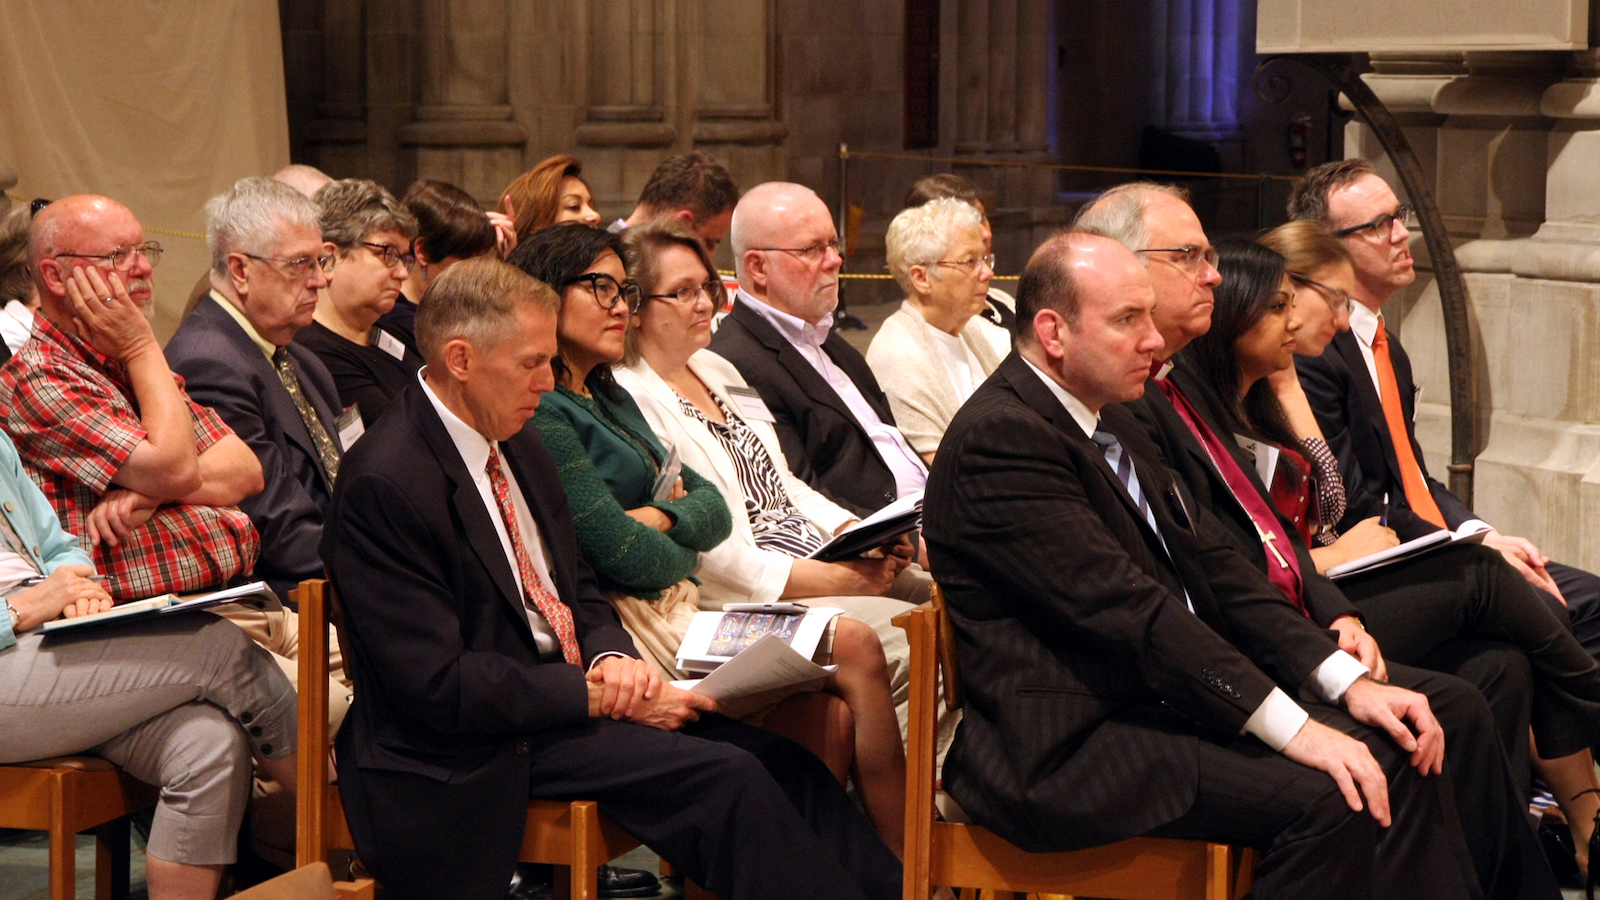 """Participants in the May 2015 """"Vatican II: Remembering the Future"""" conference attend an event at the National Cathedral in Washington, DC."""